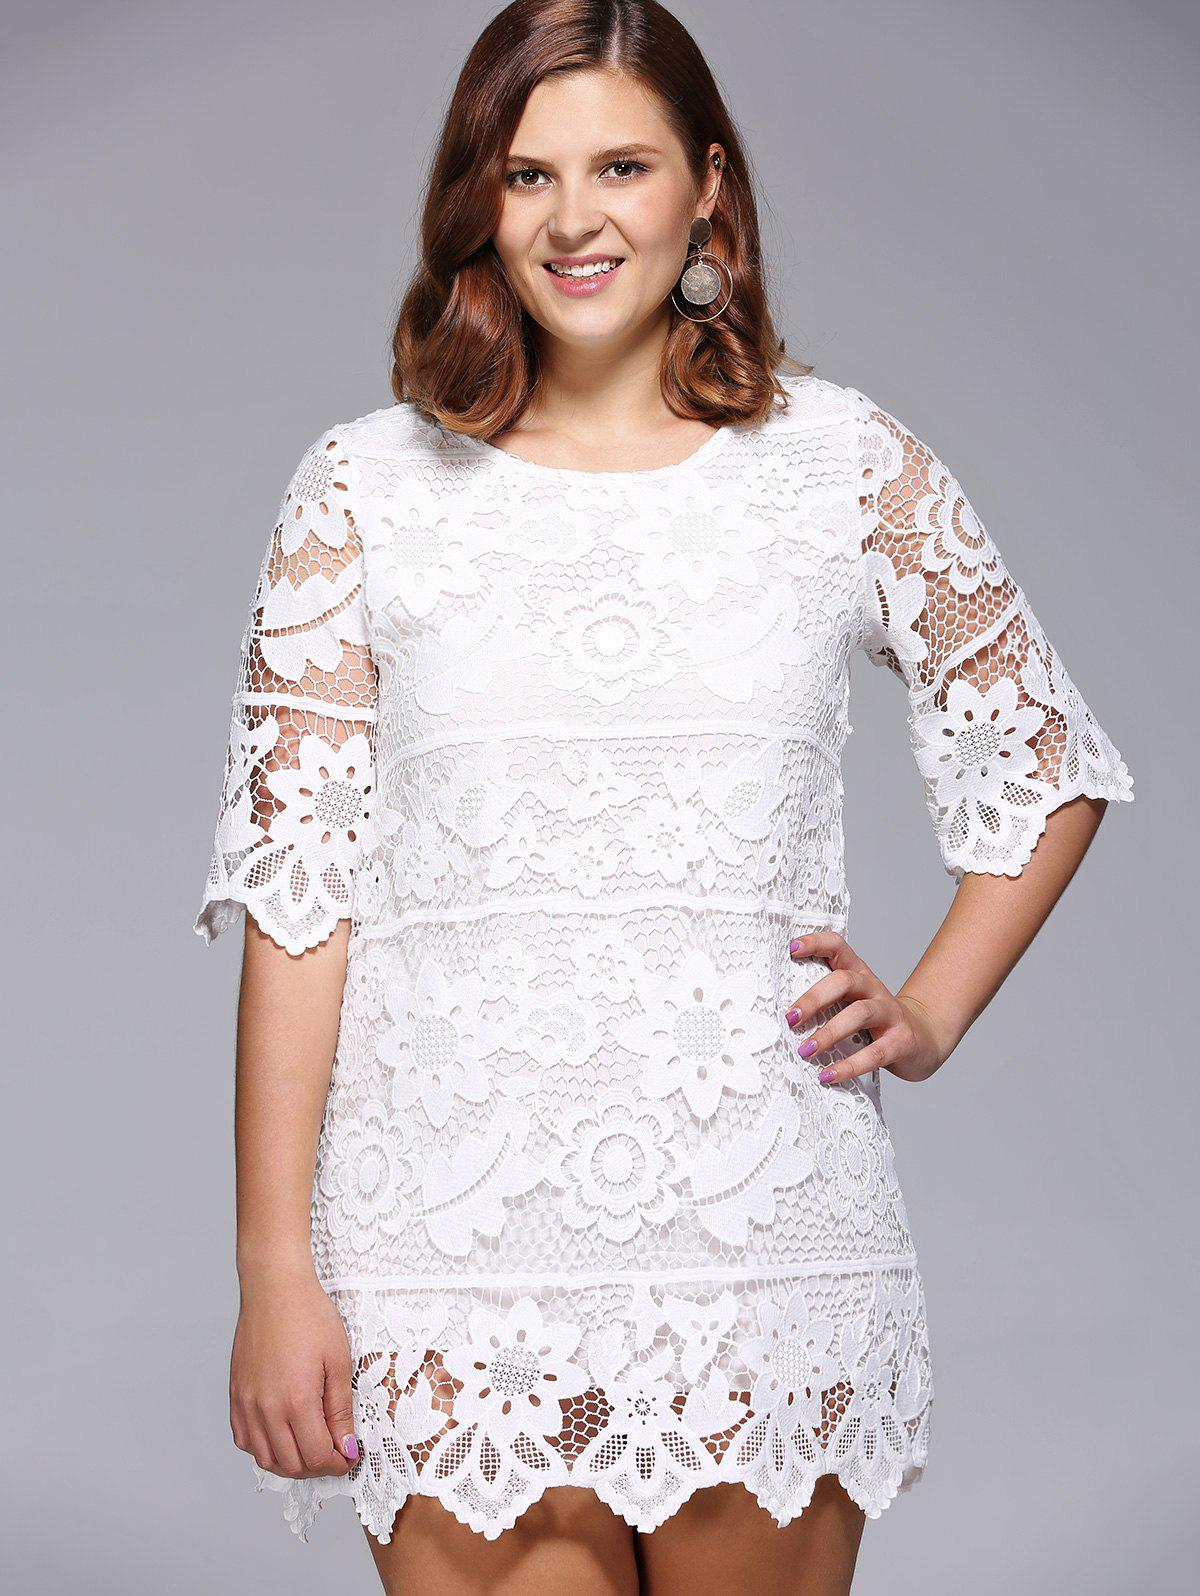 Chic Women's Plus Size Floral Lace Overlay Lined Dress - WHITE ONE SIZE(FIT SIZE L TO 3XL)